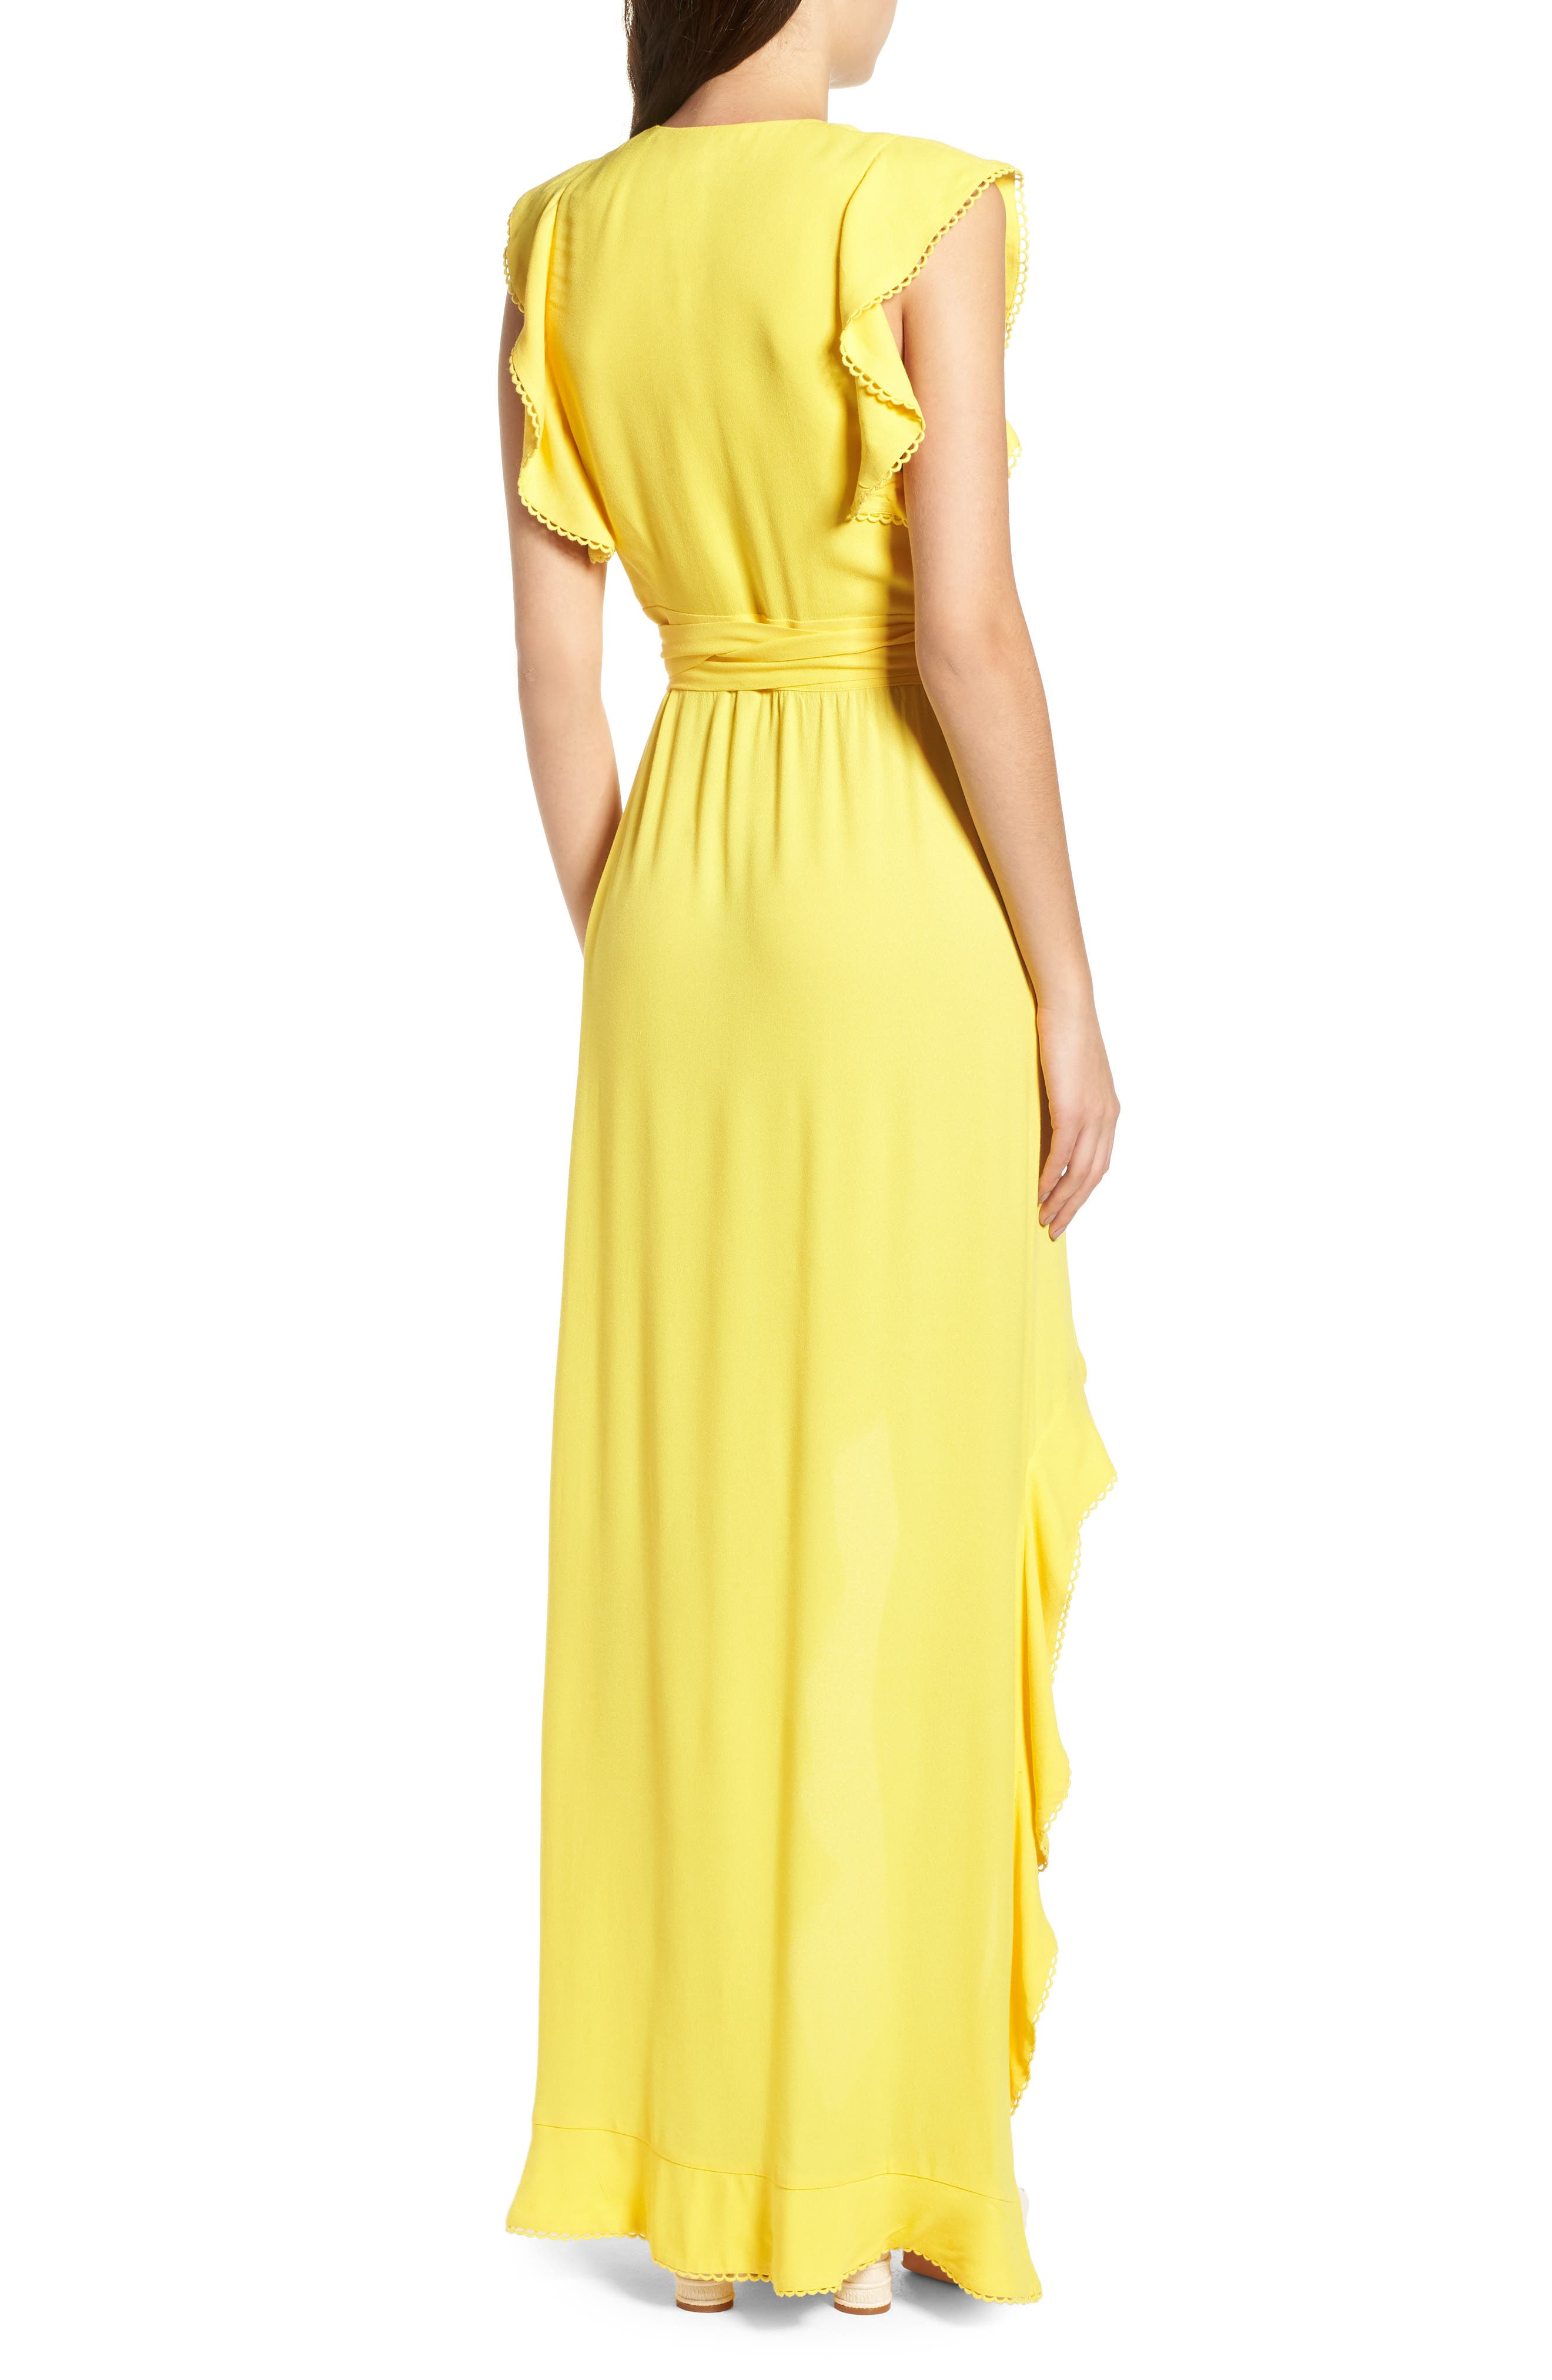 Andrea Ruffle Wrap Dress,                             Alternate thumbnail 2, color,                             Gold